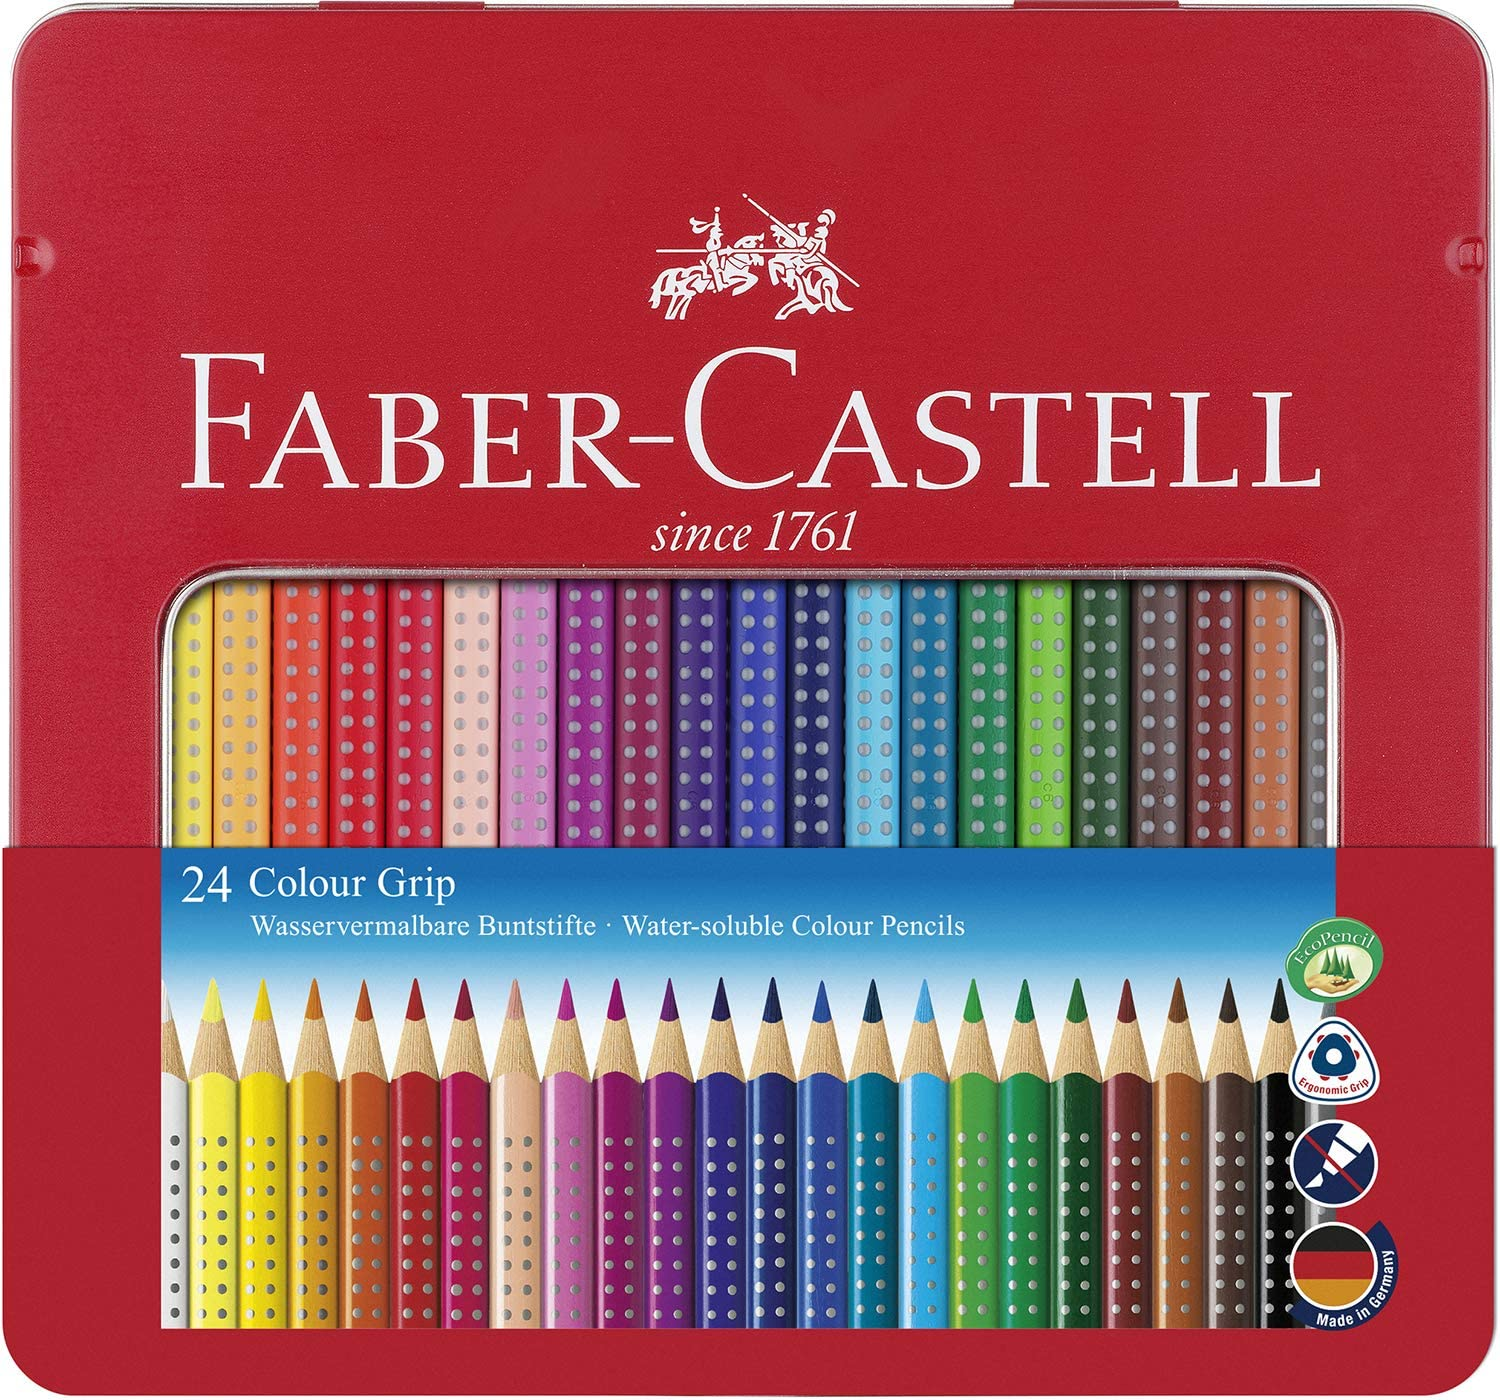 Faber Castell 112423 - Estuche de metal con 24 ecolápices triangulares de colores Grip, acuarelables, lápices escolares, multicolor: Amazon.es: Oficina y papelería